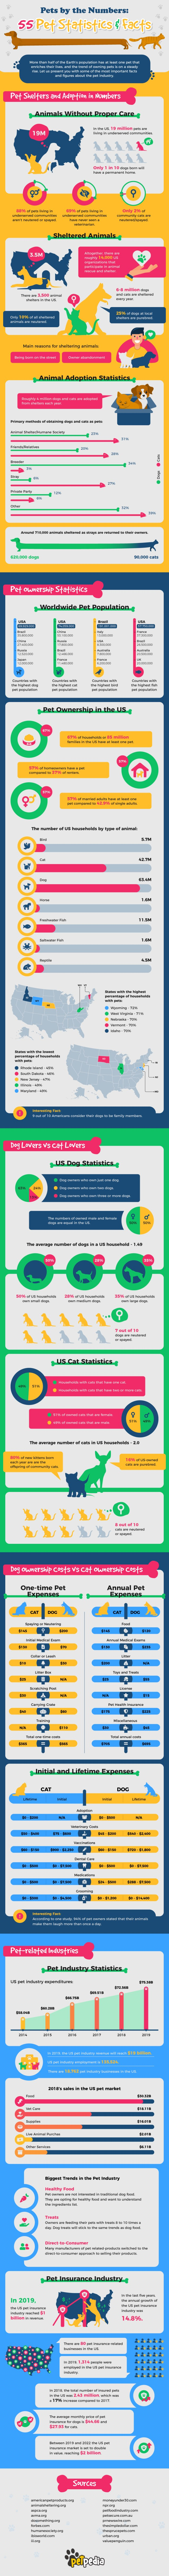 Pets by the Numbers: 55 Pet Statistics & Facts